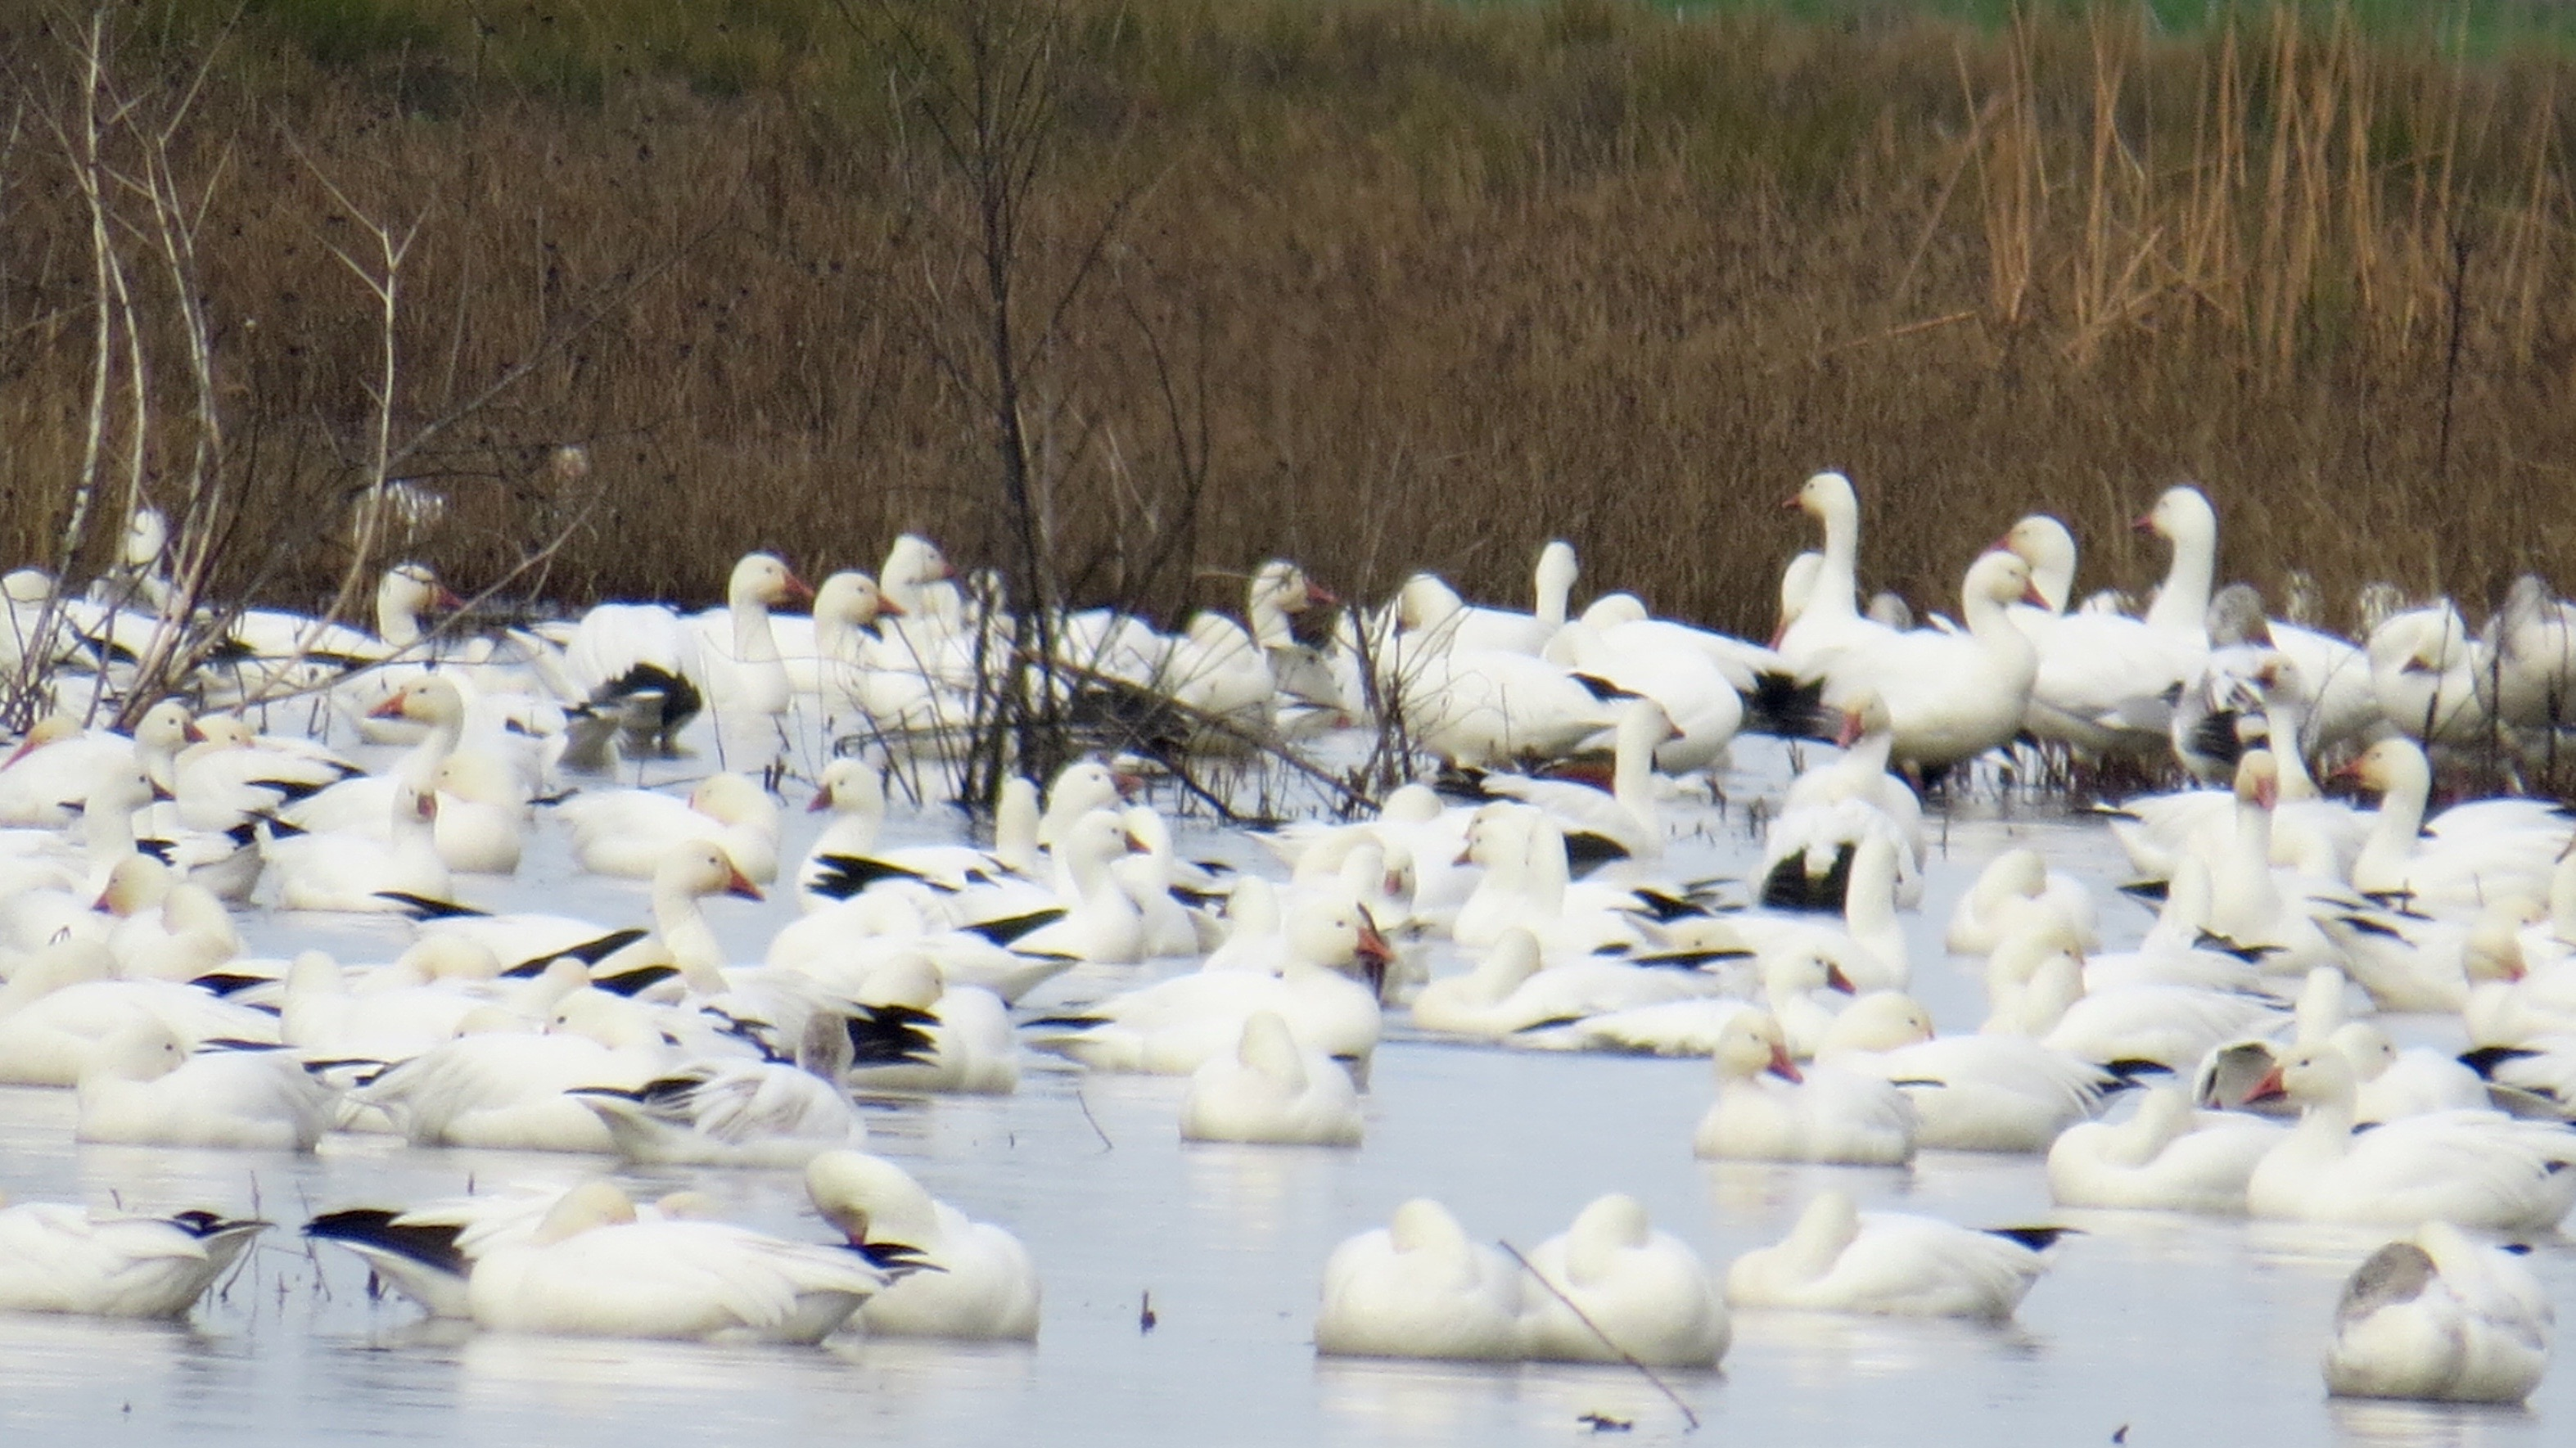 Thousands of Snow Geese and the smaller Ross's Geese winter in the San Joaquin Valley